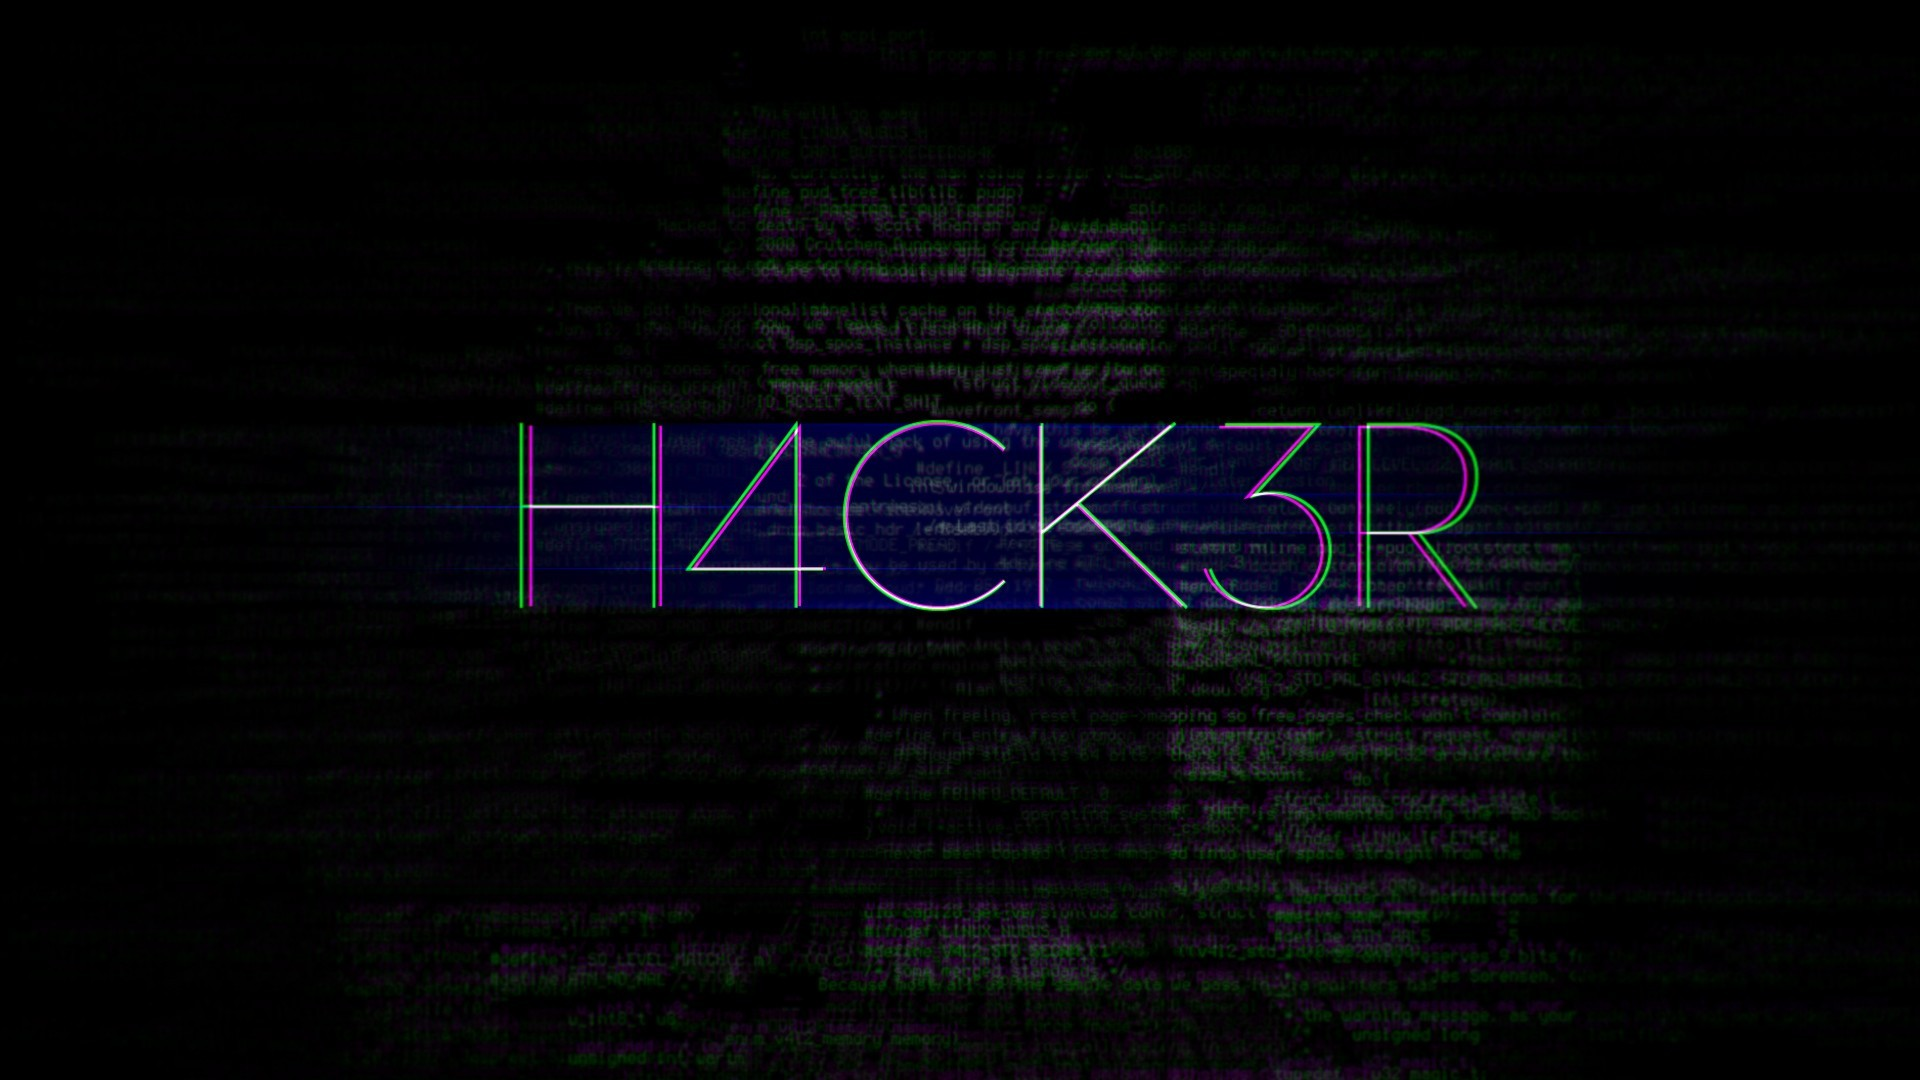 it ethics hacking and copyrights essay The ethics of hacking: should it be taught nicole radziwill, jessica romano, diane shorter, and morgan benton poor software quality can adversely affect application security by increasing.